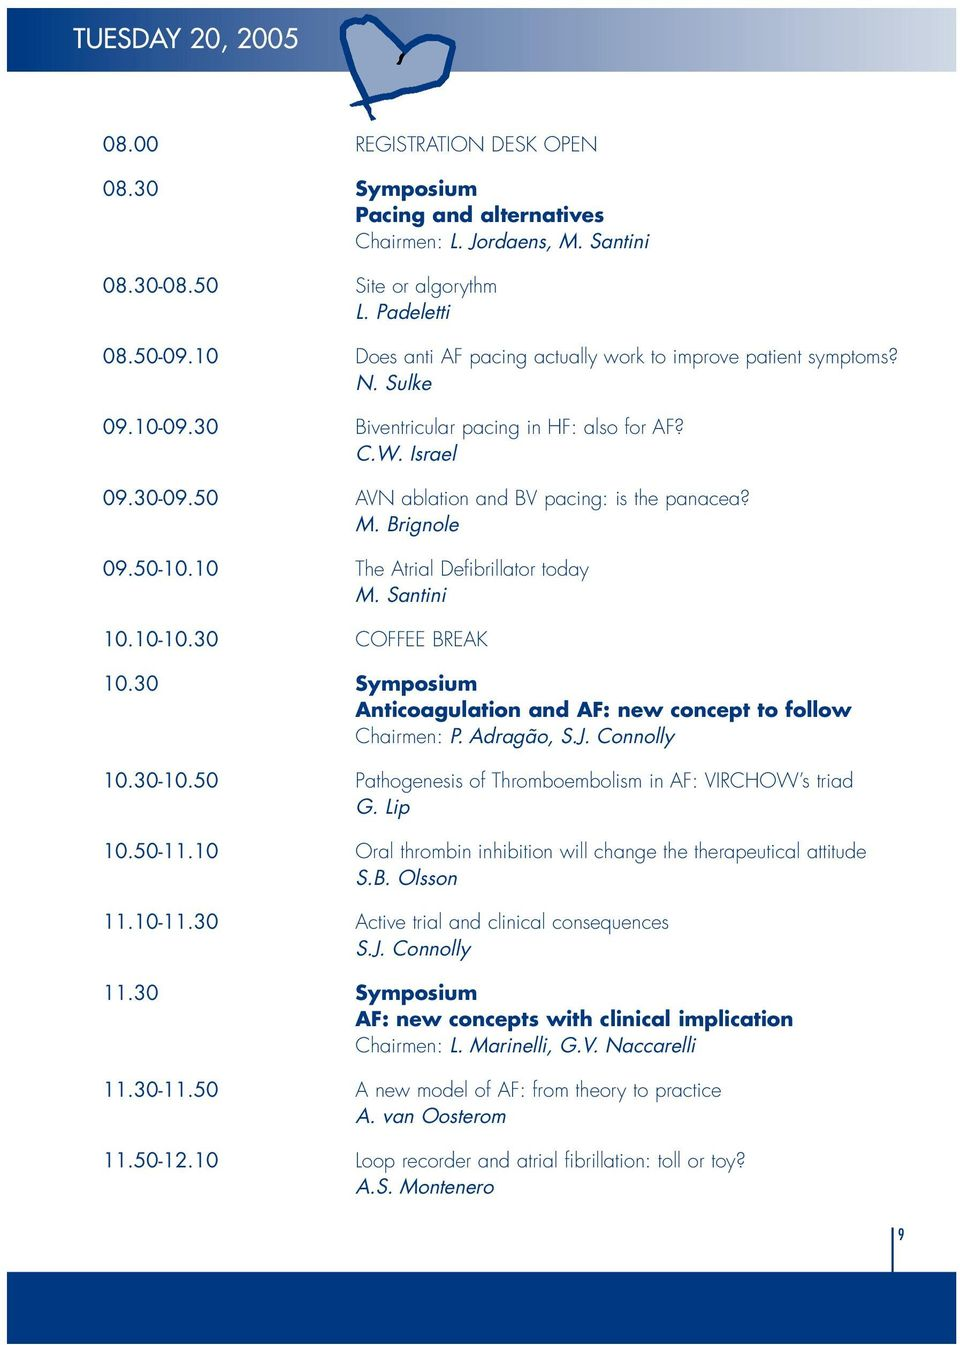 Brignole 09.50-10.10 The Atrial Defibrillator today M. Santini 10.10-10.30 COFFEE BREAK 10.30 Symposium Anticoagulation and AF: new concept to follow Chairmen: P. Adragão, S.J. Connolly 10.30-10.